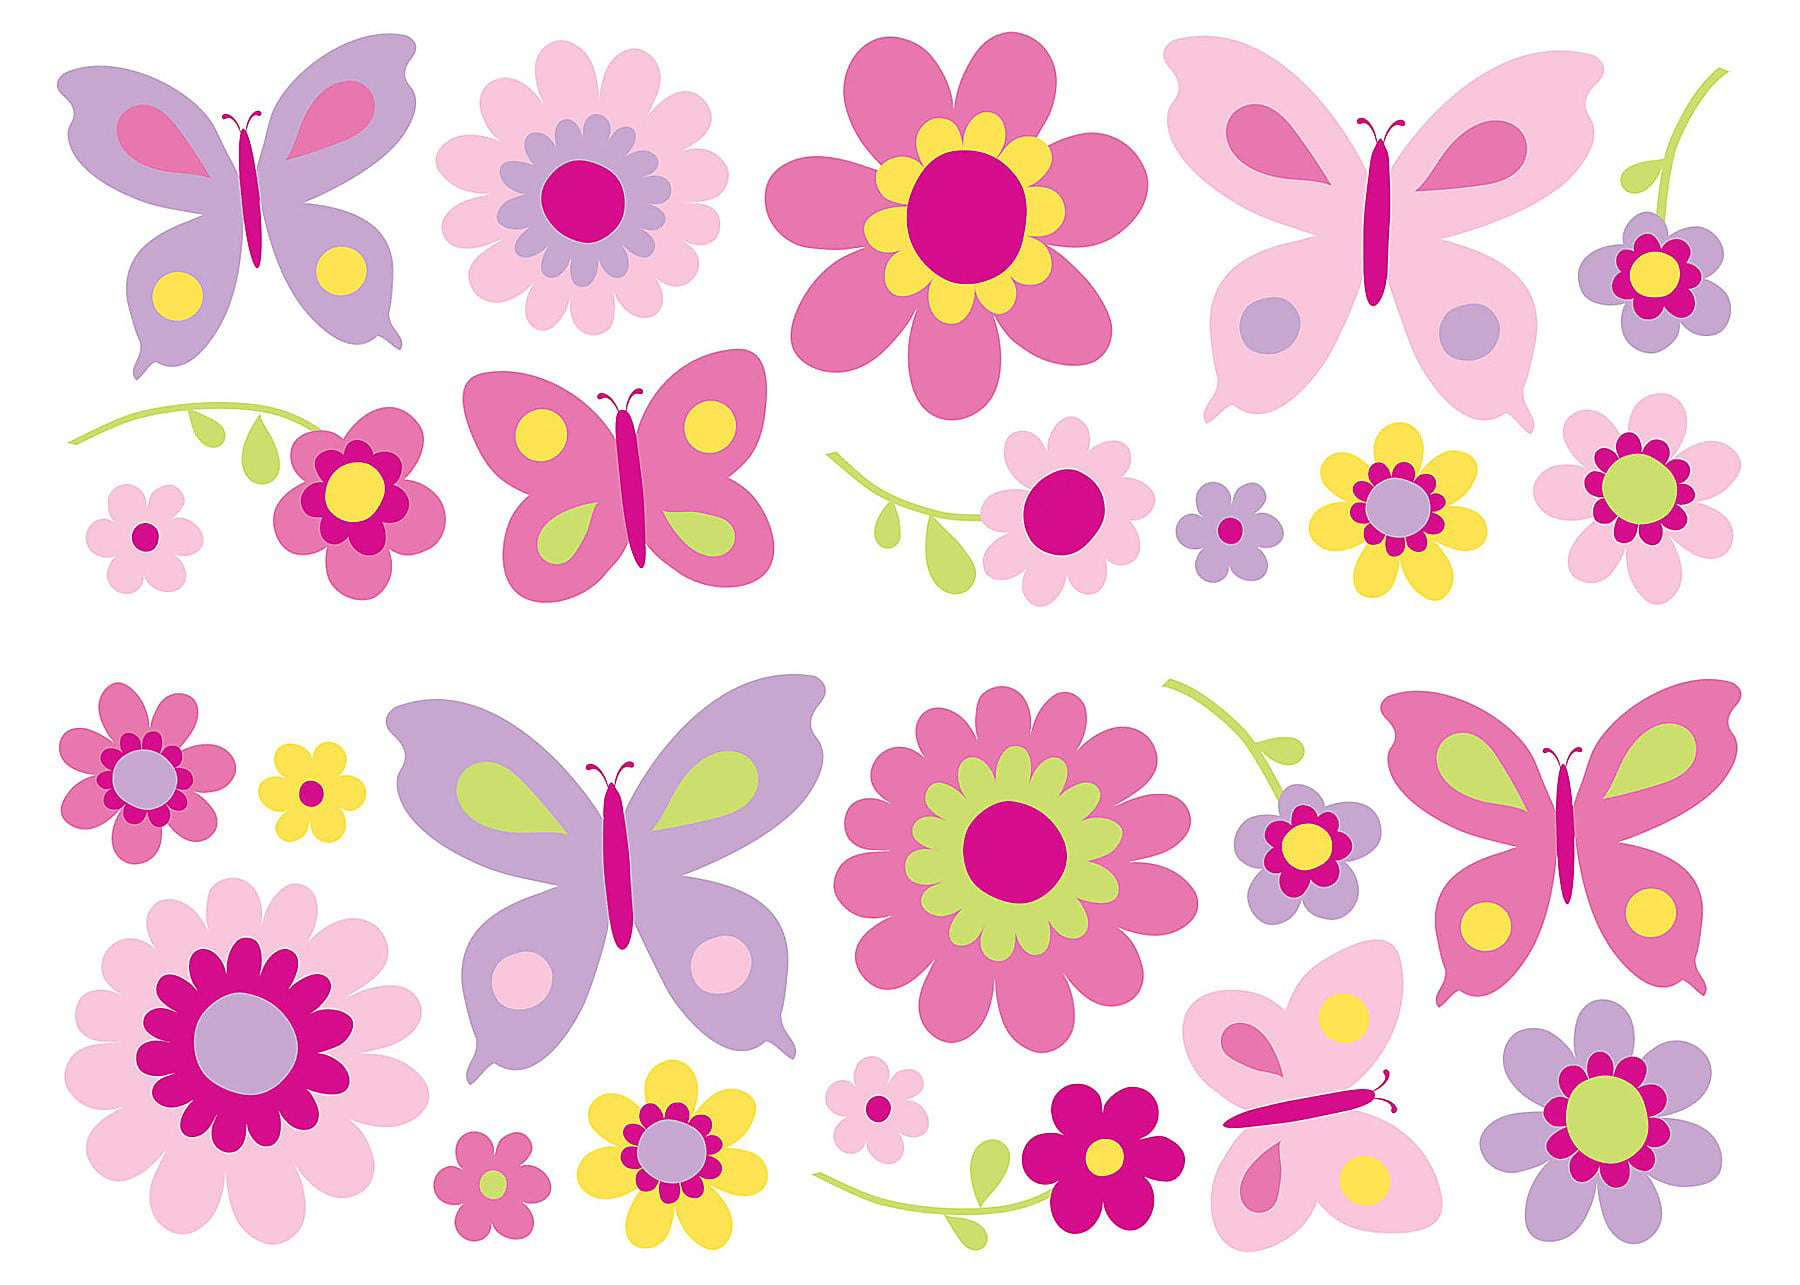 Captivating Fun4Walls Butterfly And Flowers Wall Decals   Walmart.com Design Inspirations